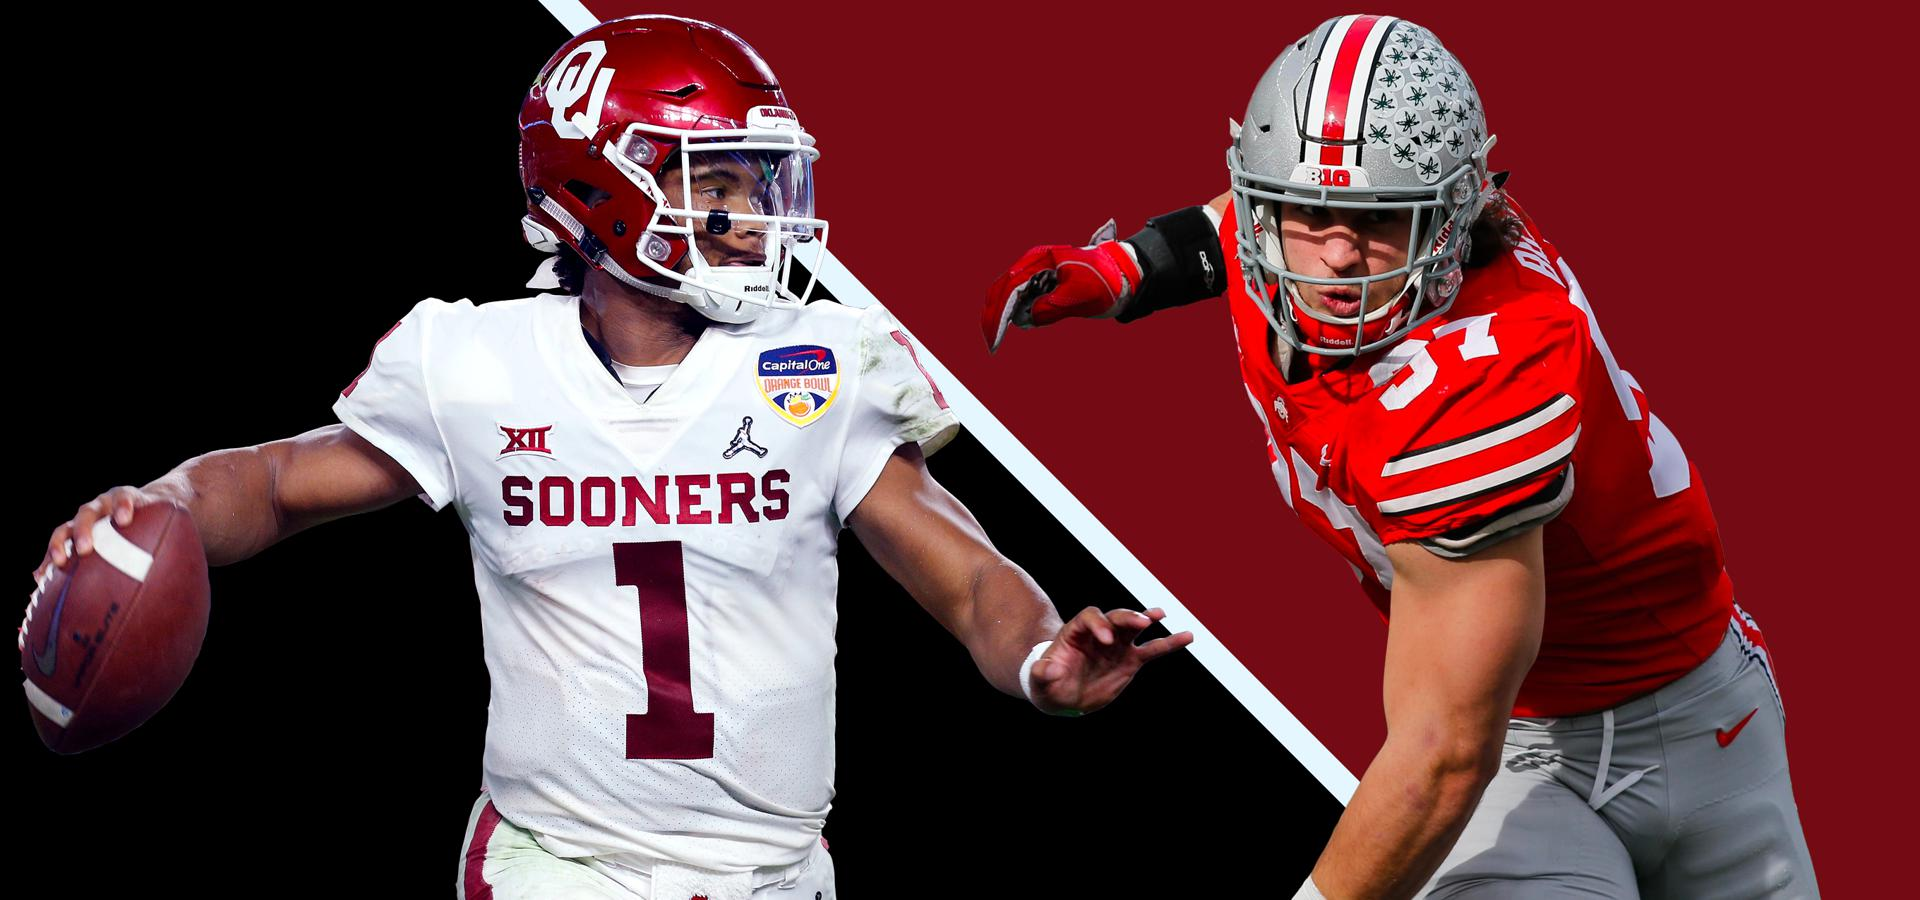 Oklahoma's Kyler Murray and Ohio State's Nick Bosa are Nos. 1 and 2 in the Forbes mock draft.